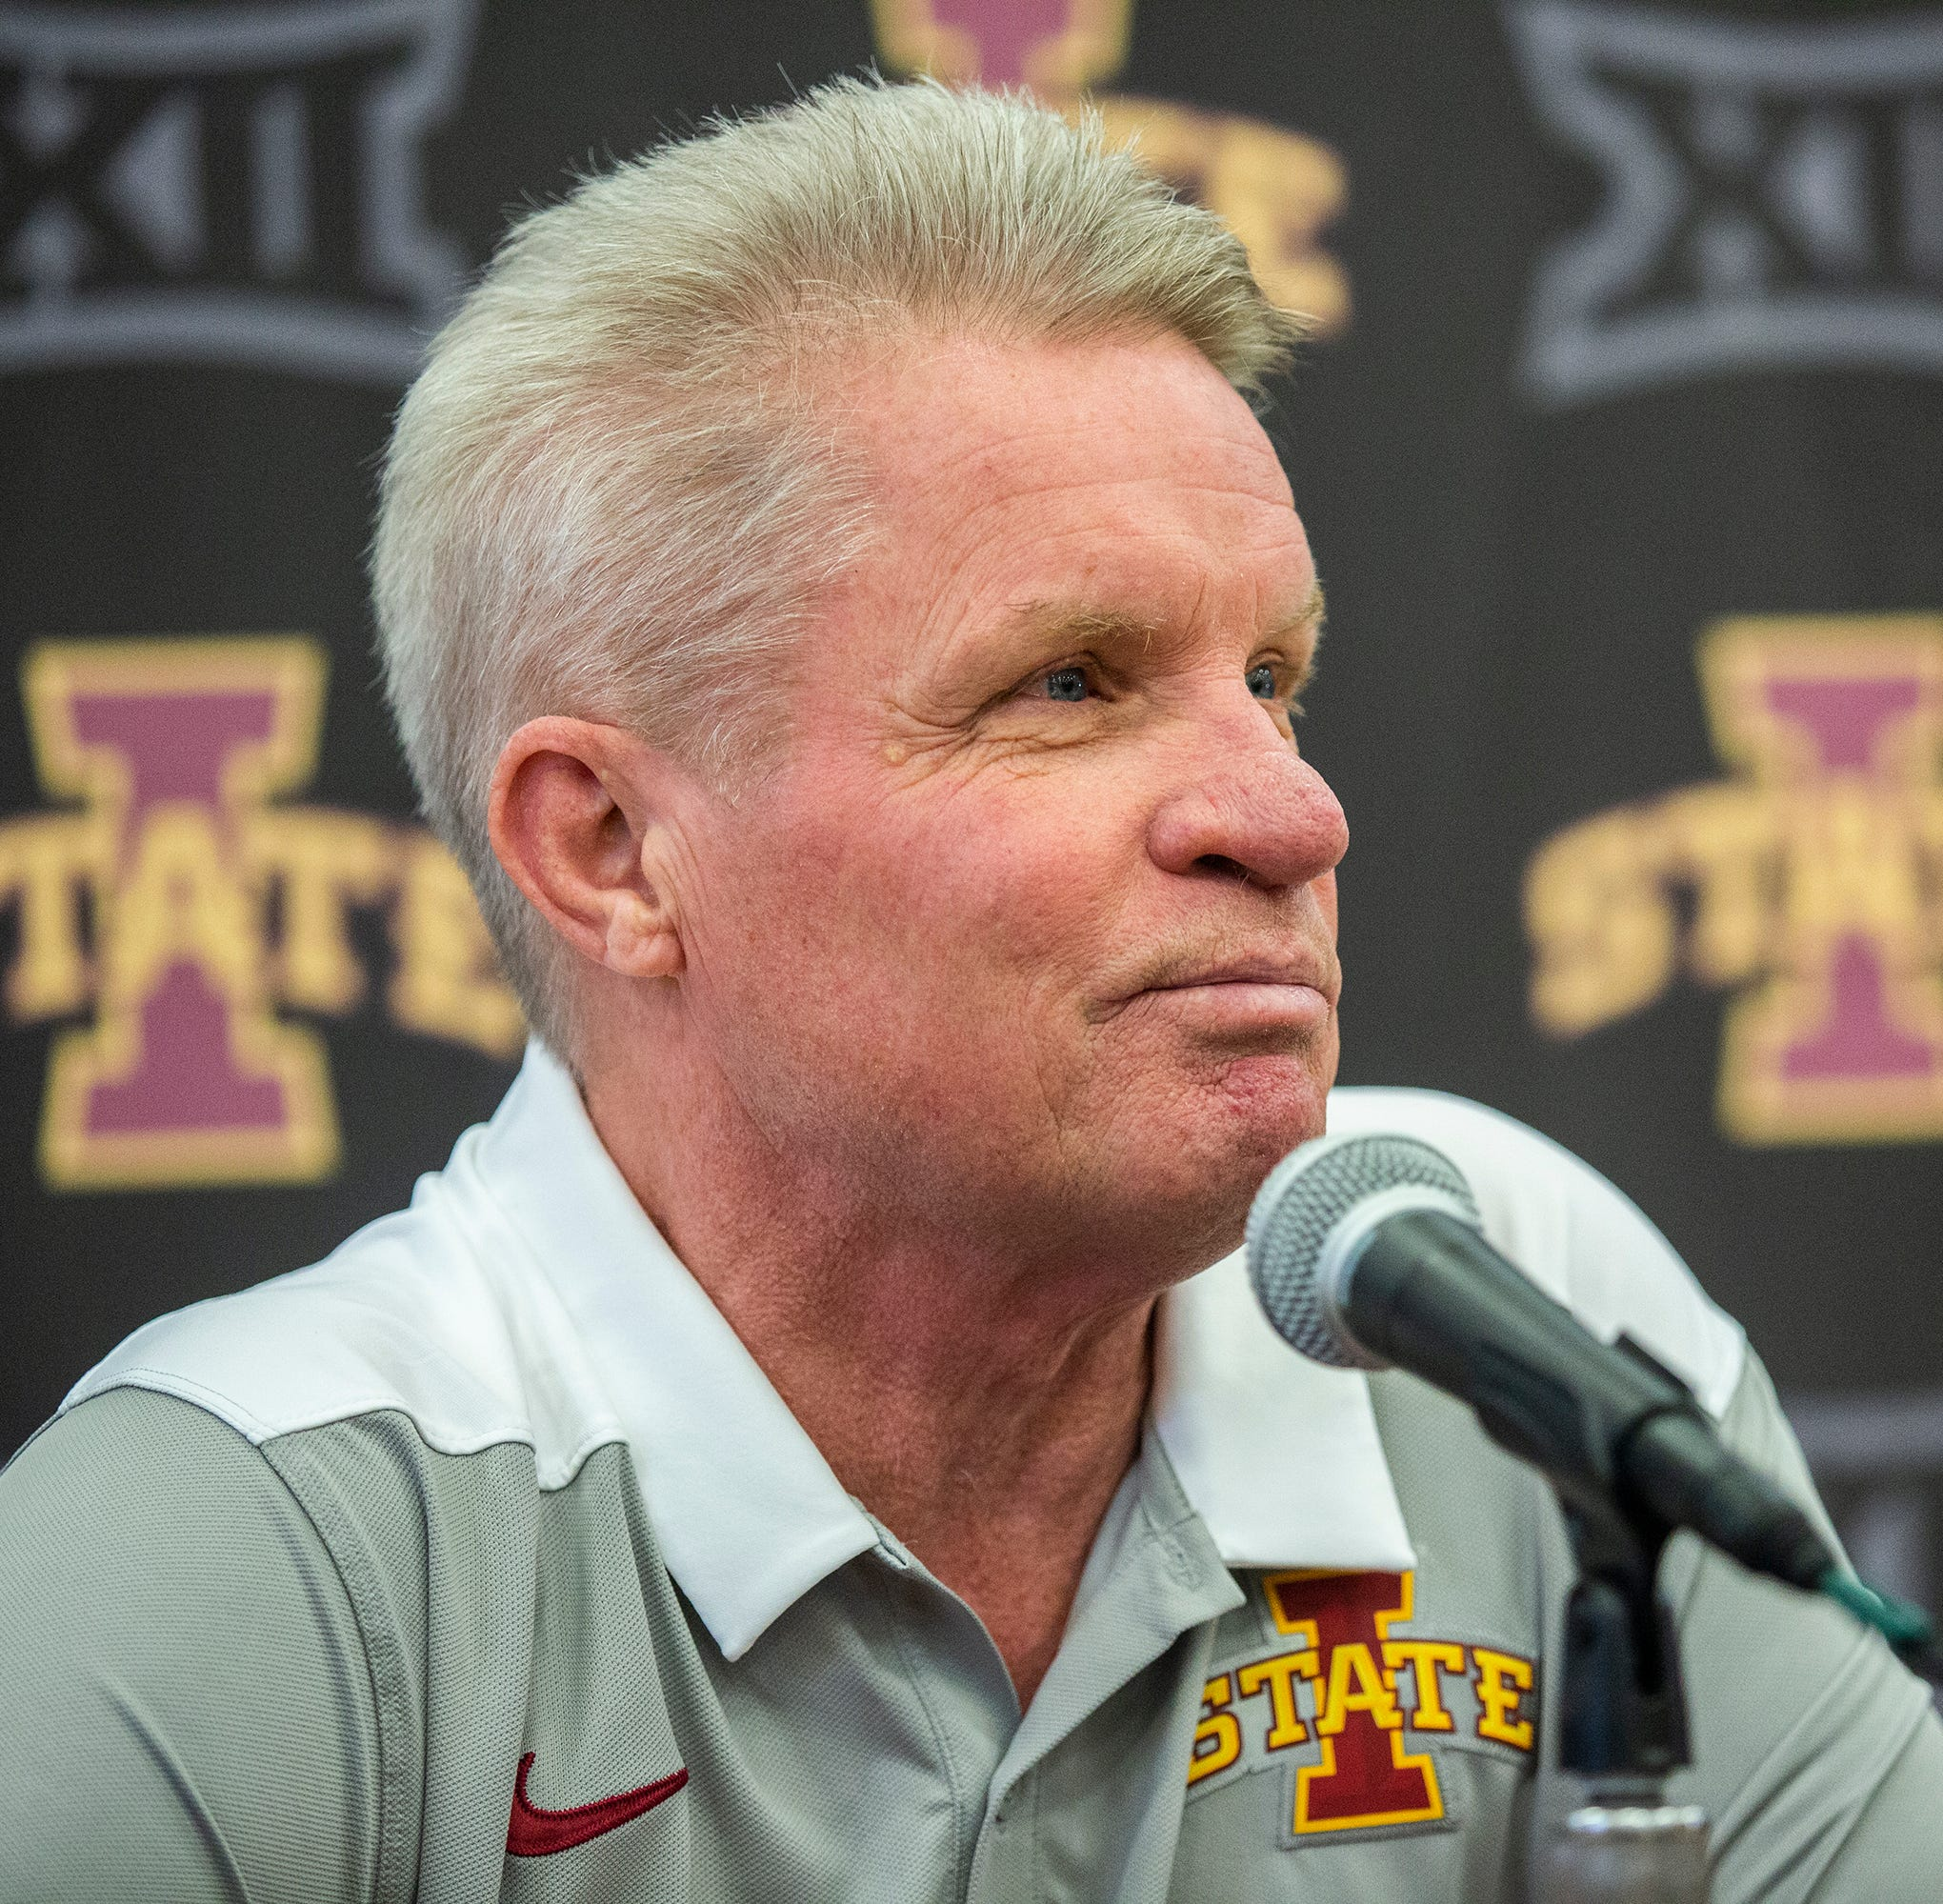 Iowa State coach Bill Fennelly can win 500th game with the Cyclones Saturday against Baylor